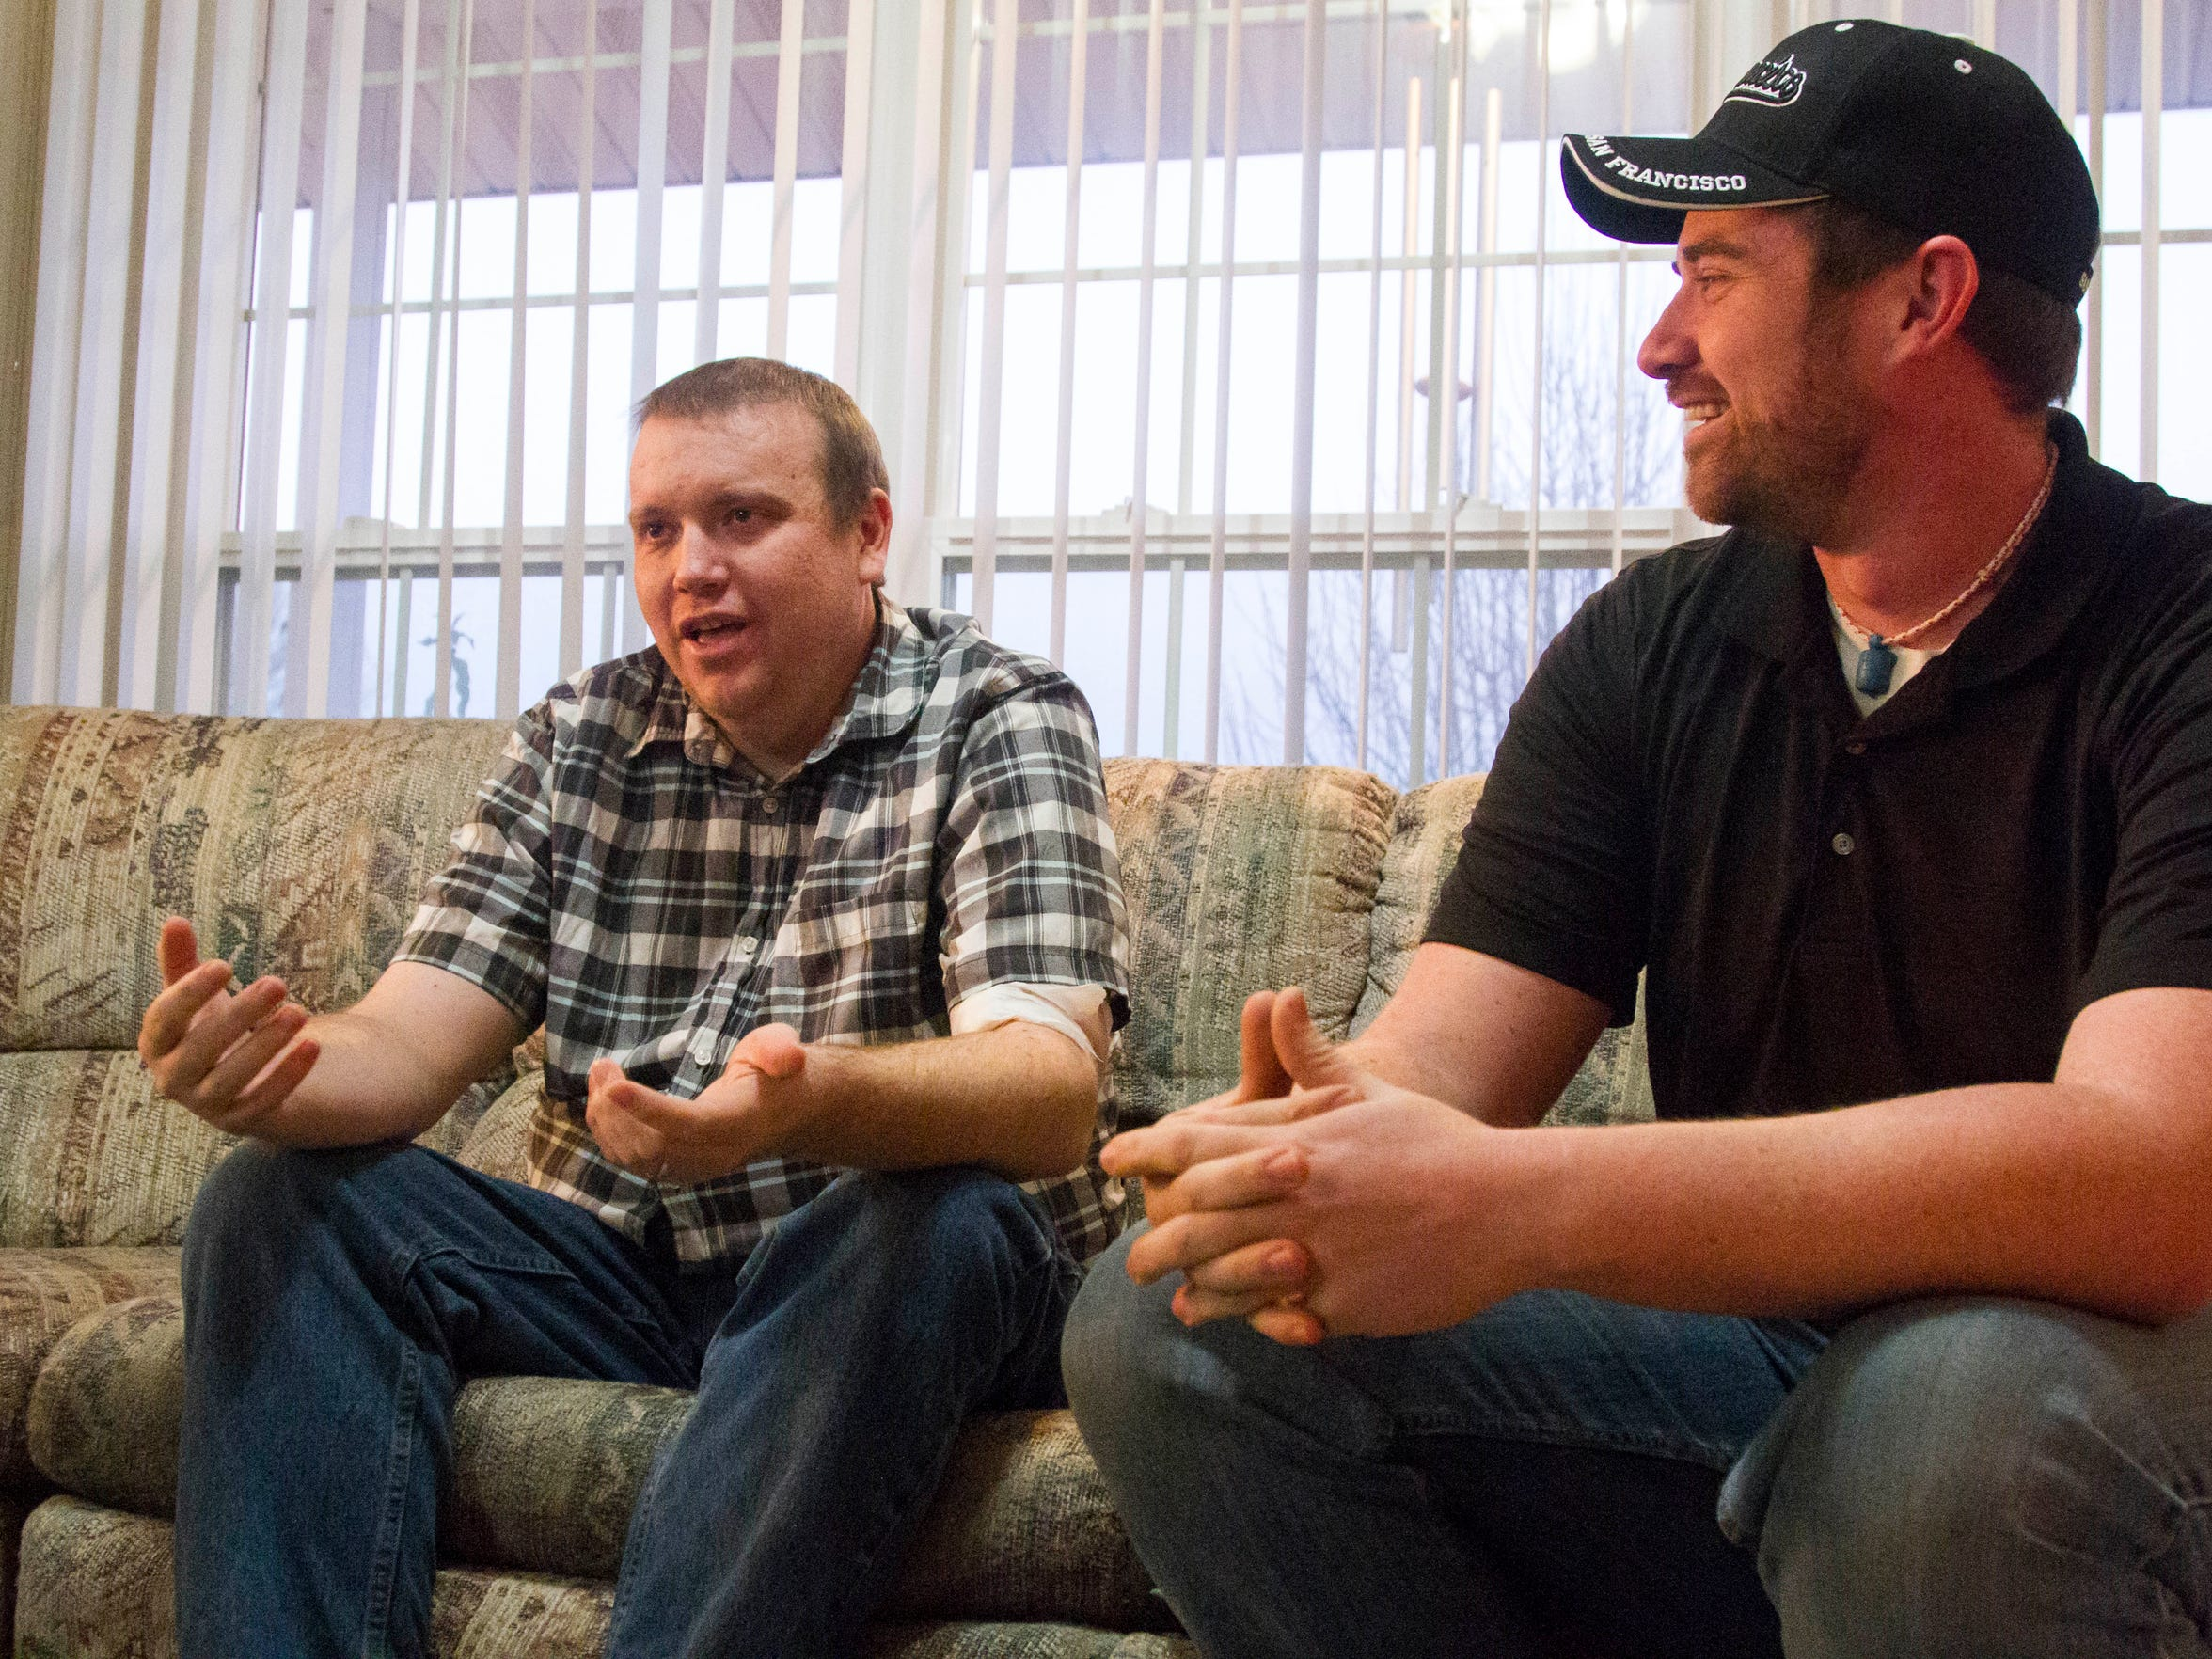 Brothers Eric (left) and Kyle (right) Stapley talk